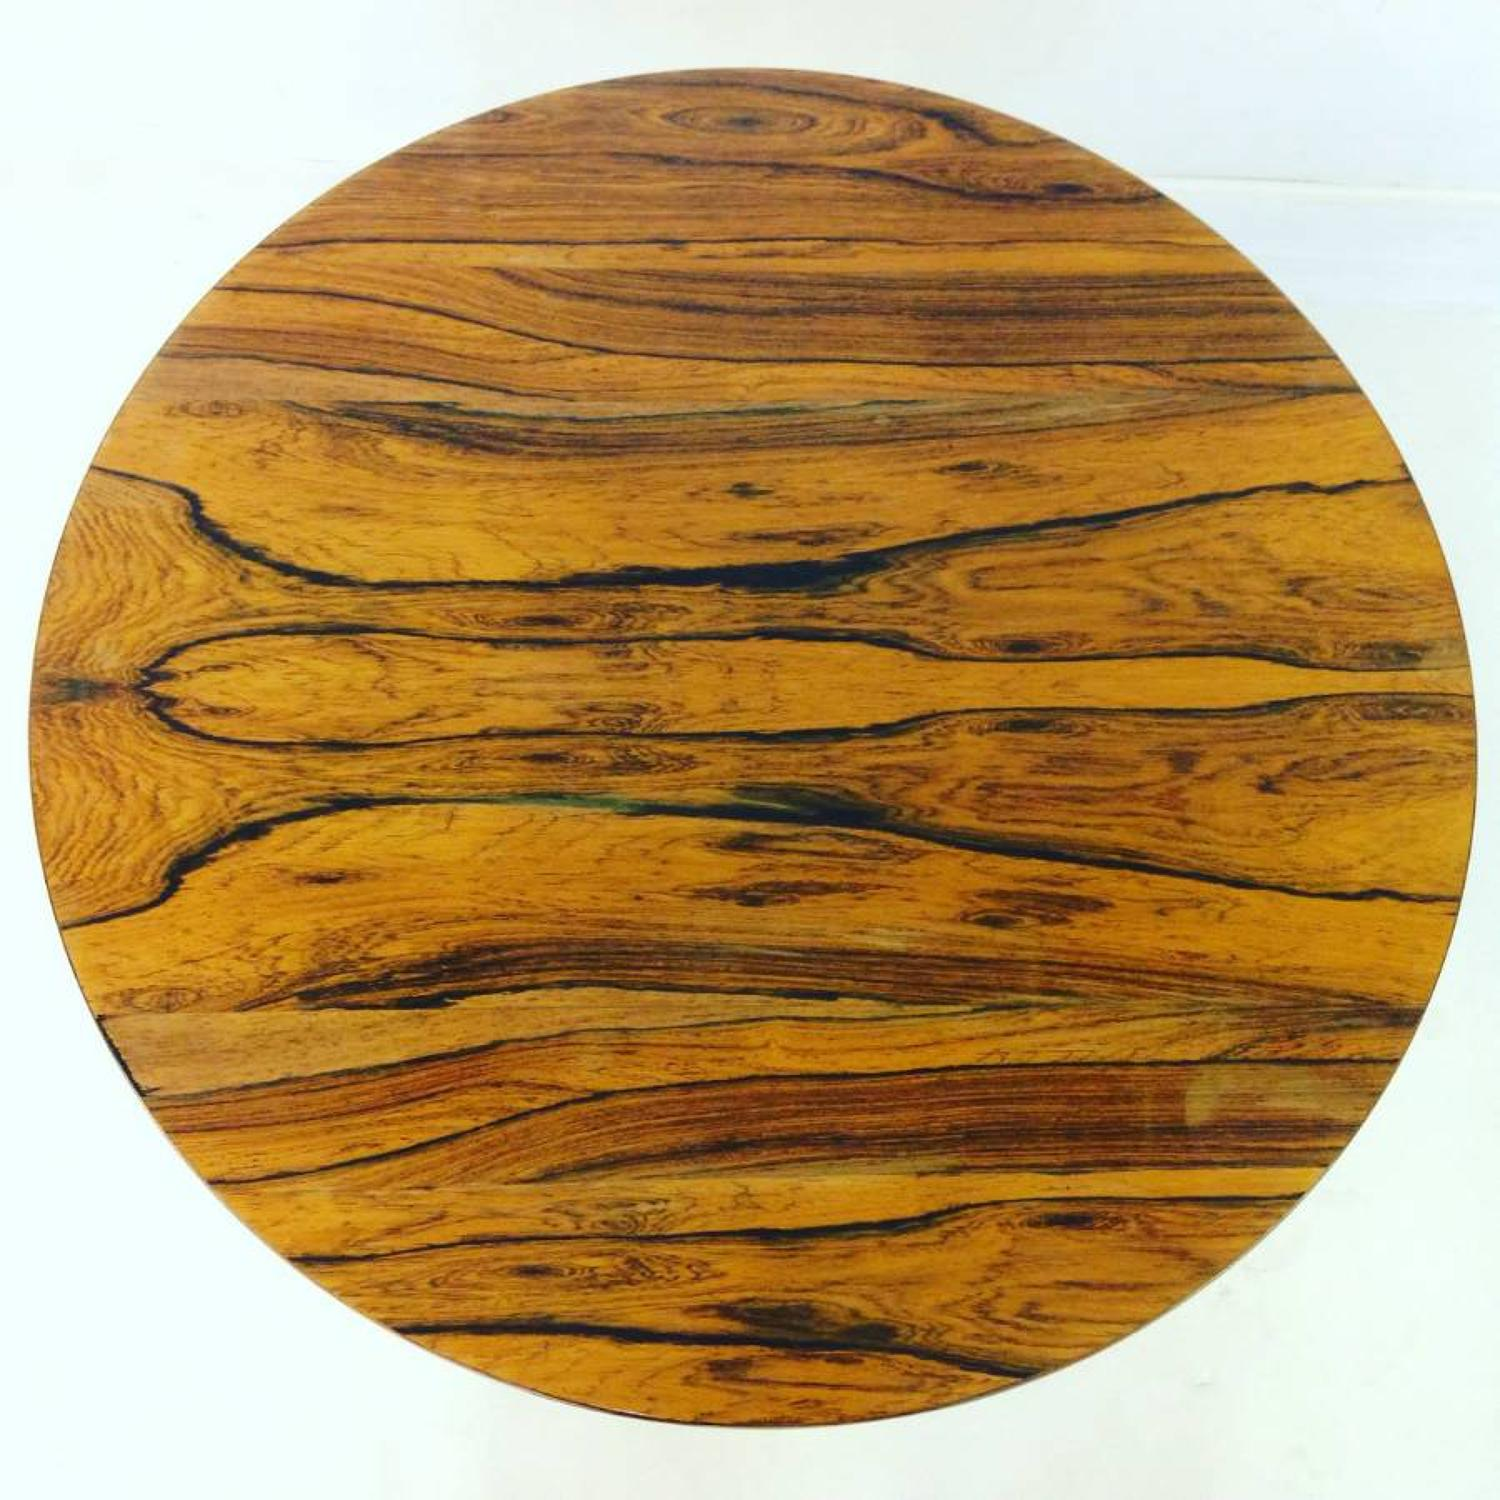 1960s rosewood coffee table by Arne Halvorsen